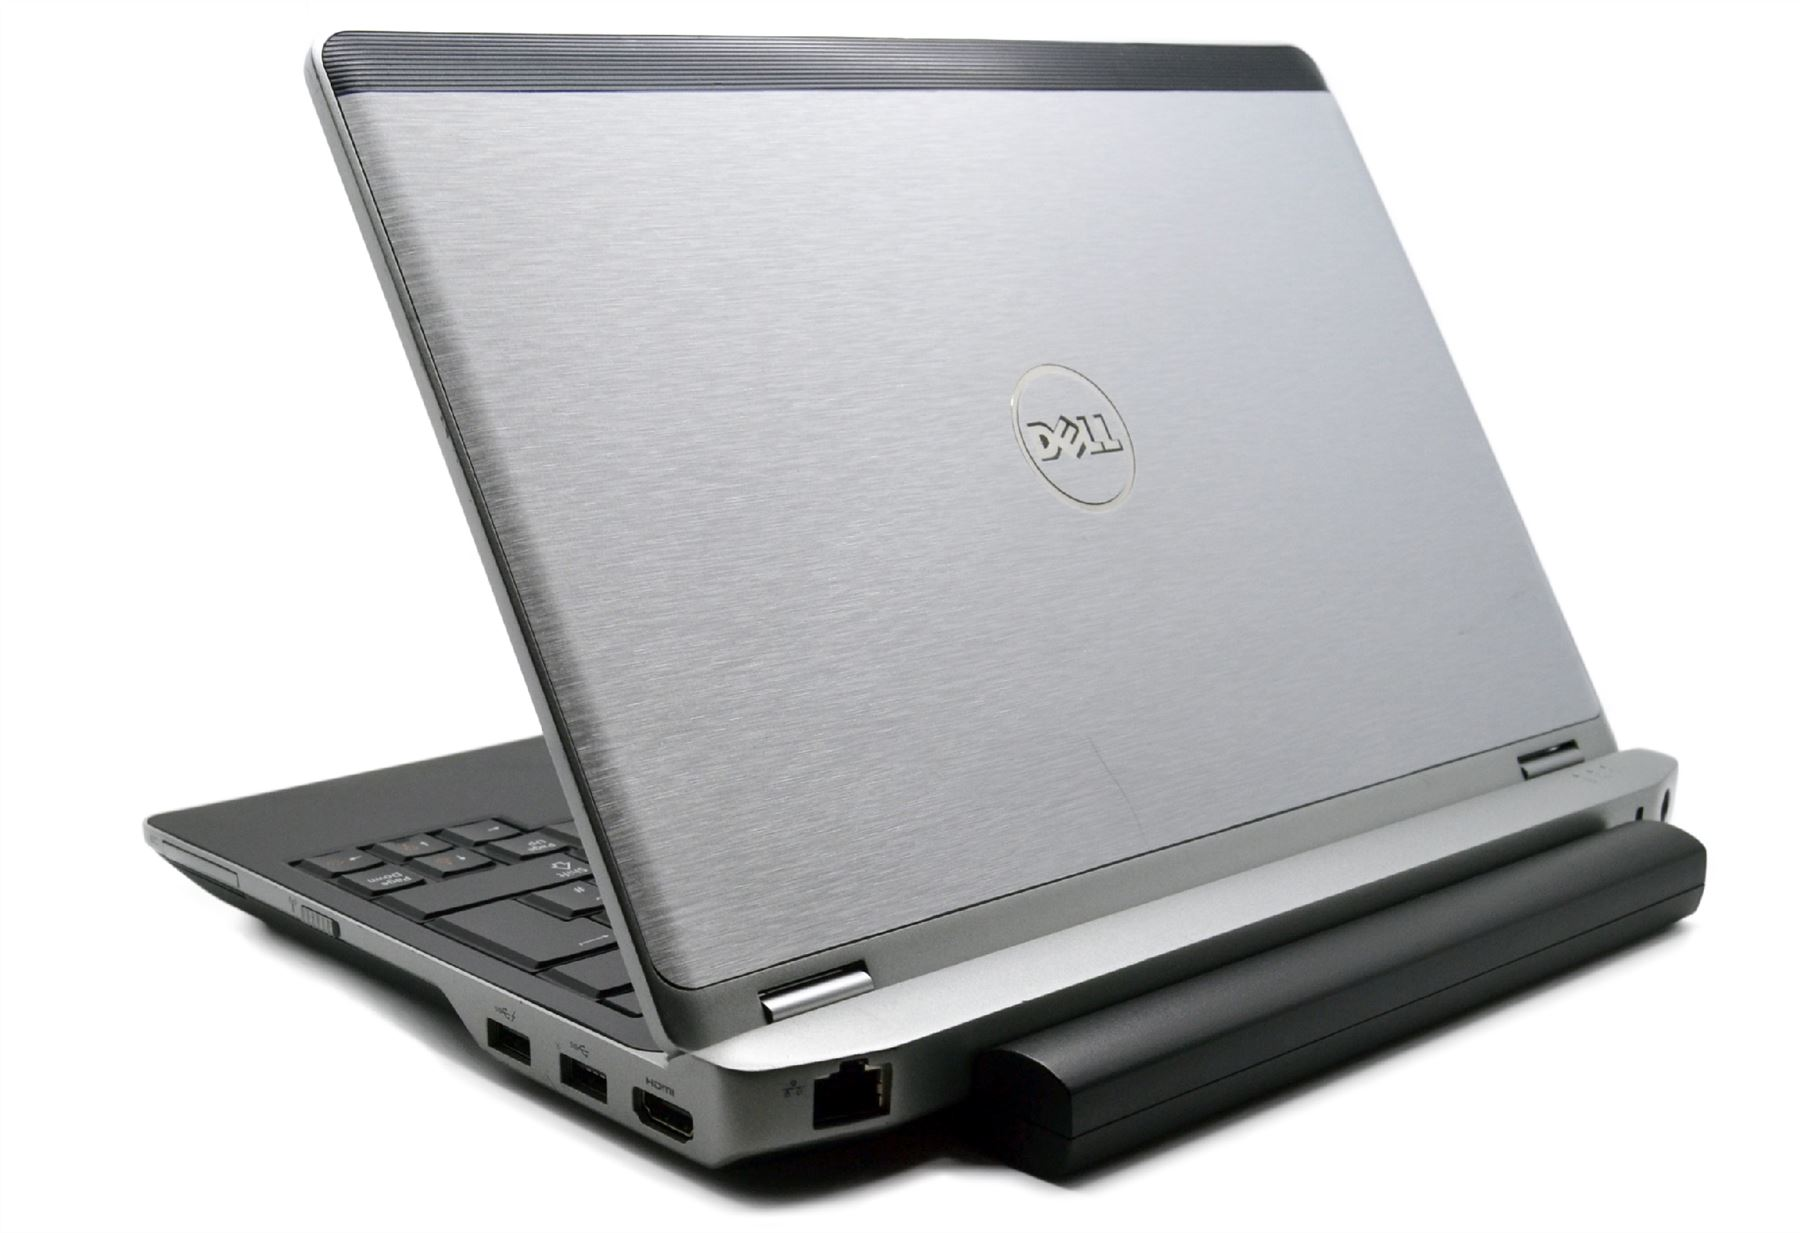 Dell Latitude E6220 E6230 Cover Laptop Decal Lid Vinyl Sticker Computer Parts Related Keywords Suggestions Long About Our And Components